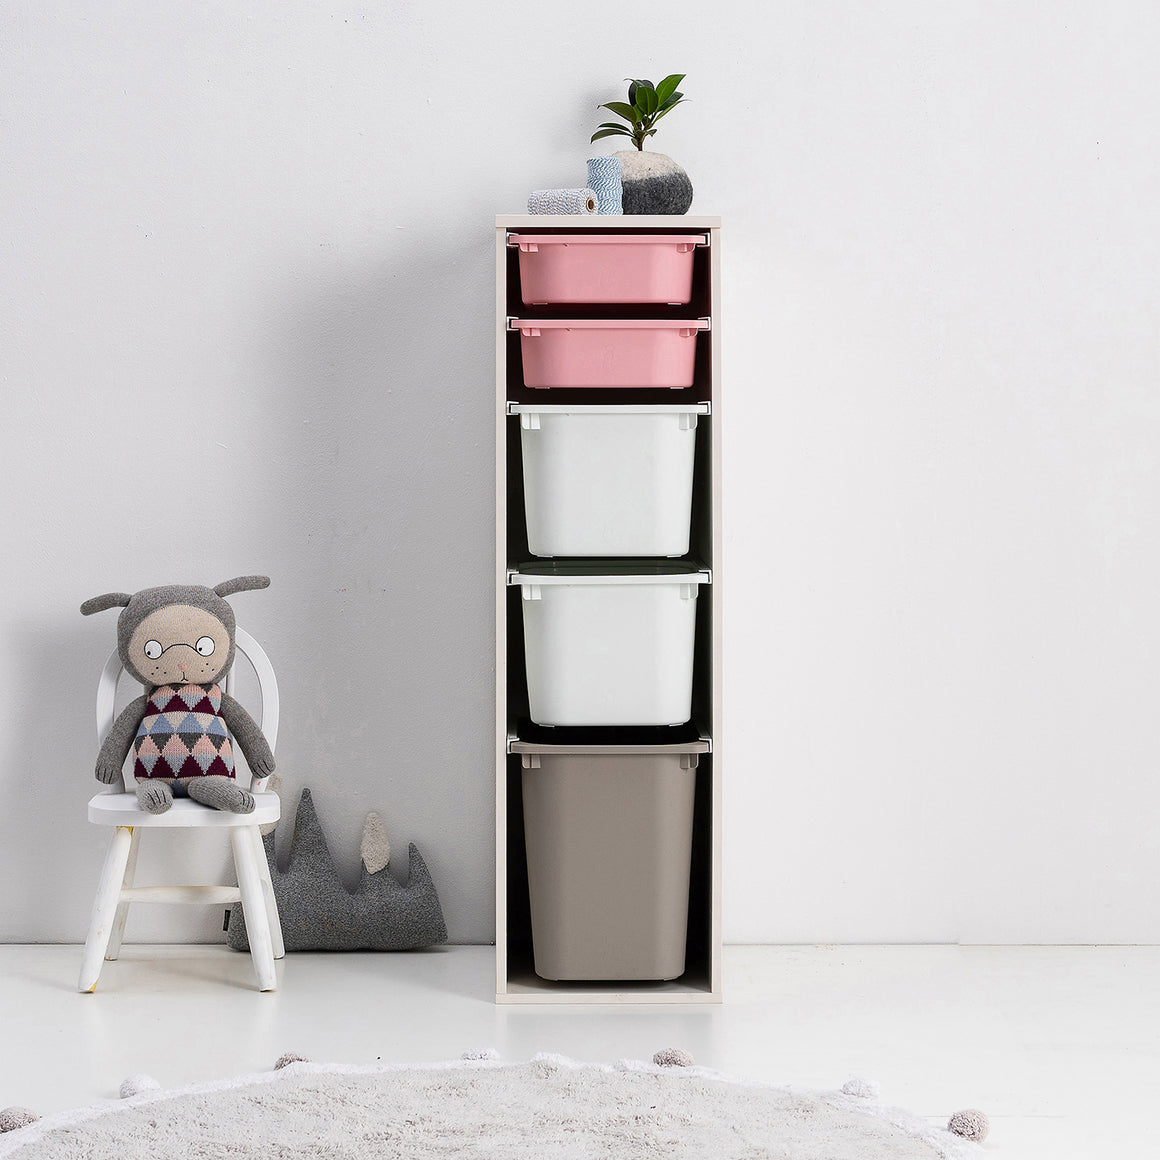 New Comme 5-Level Normal Storage (accept pre-order)